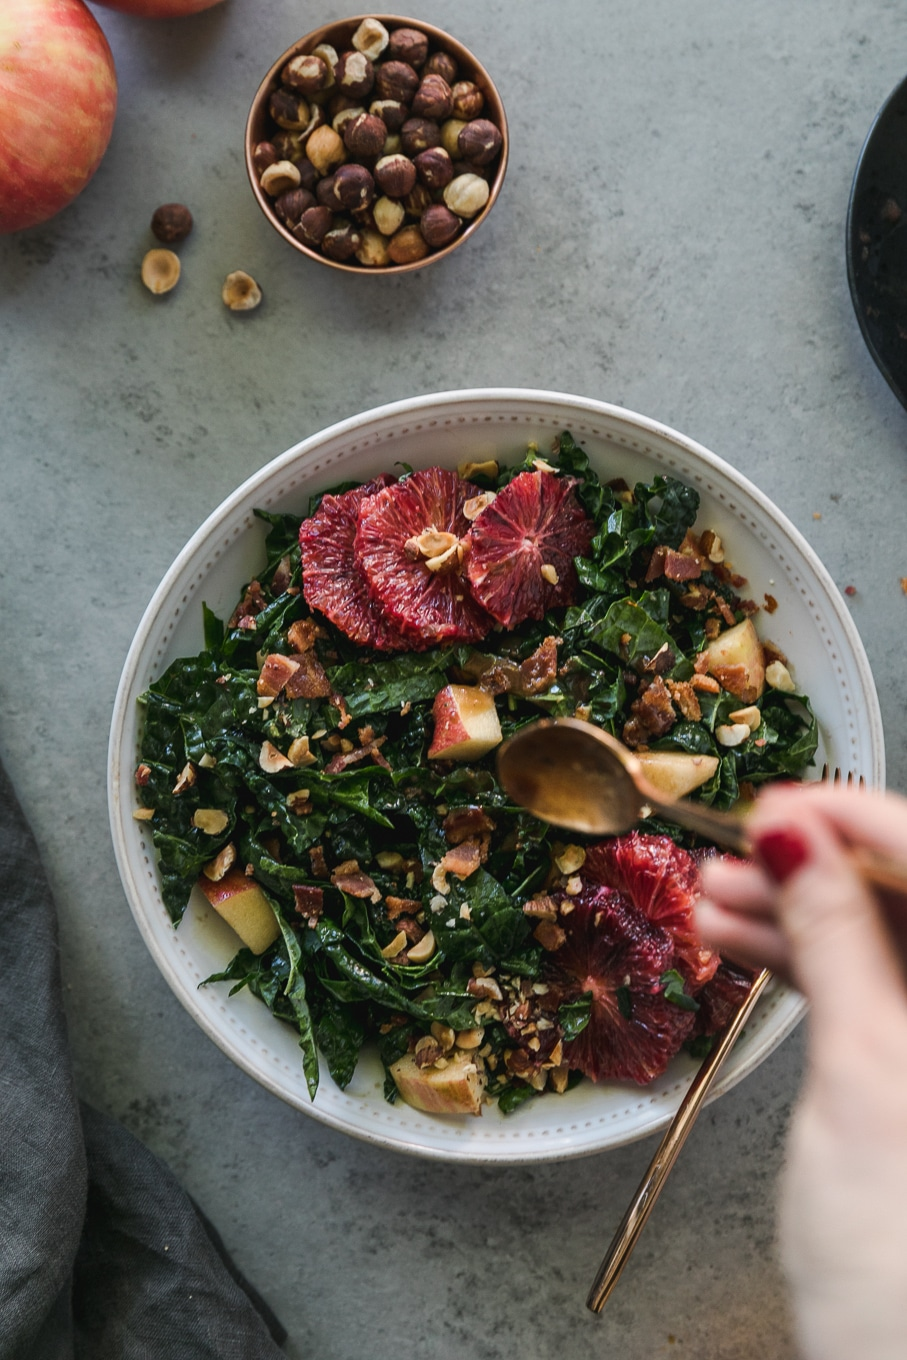 Overhead shot of a bowl of kale salad with blood oranges, apples, chopped bacon, and hazelnuts with a hand drizzling dressing on it with a gold spoon